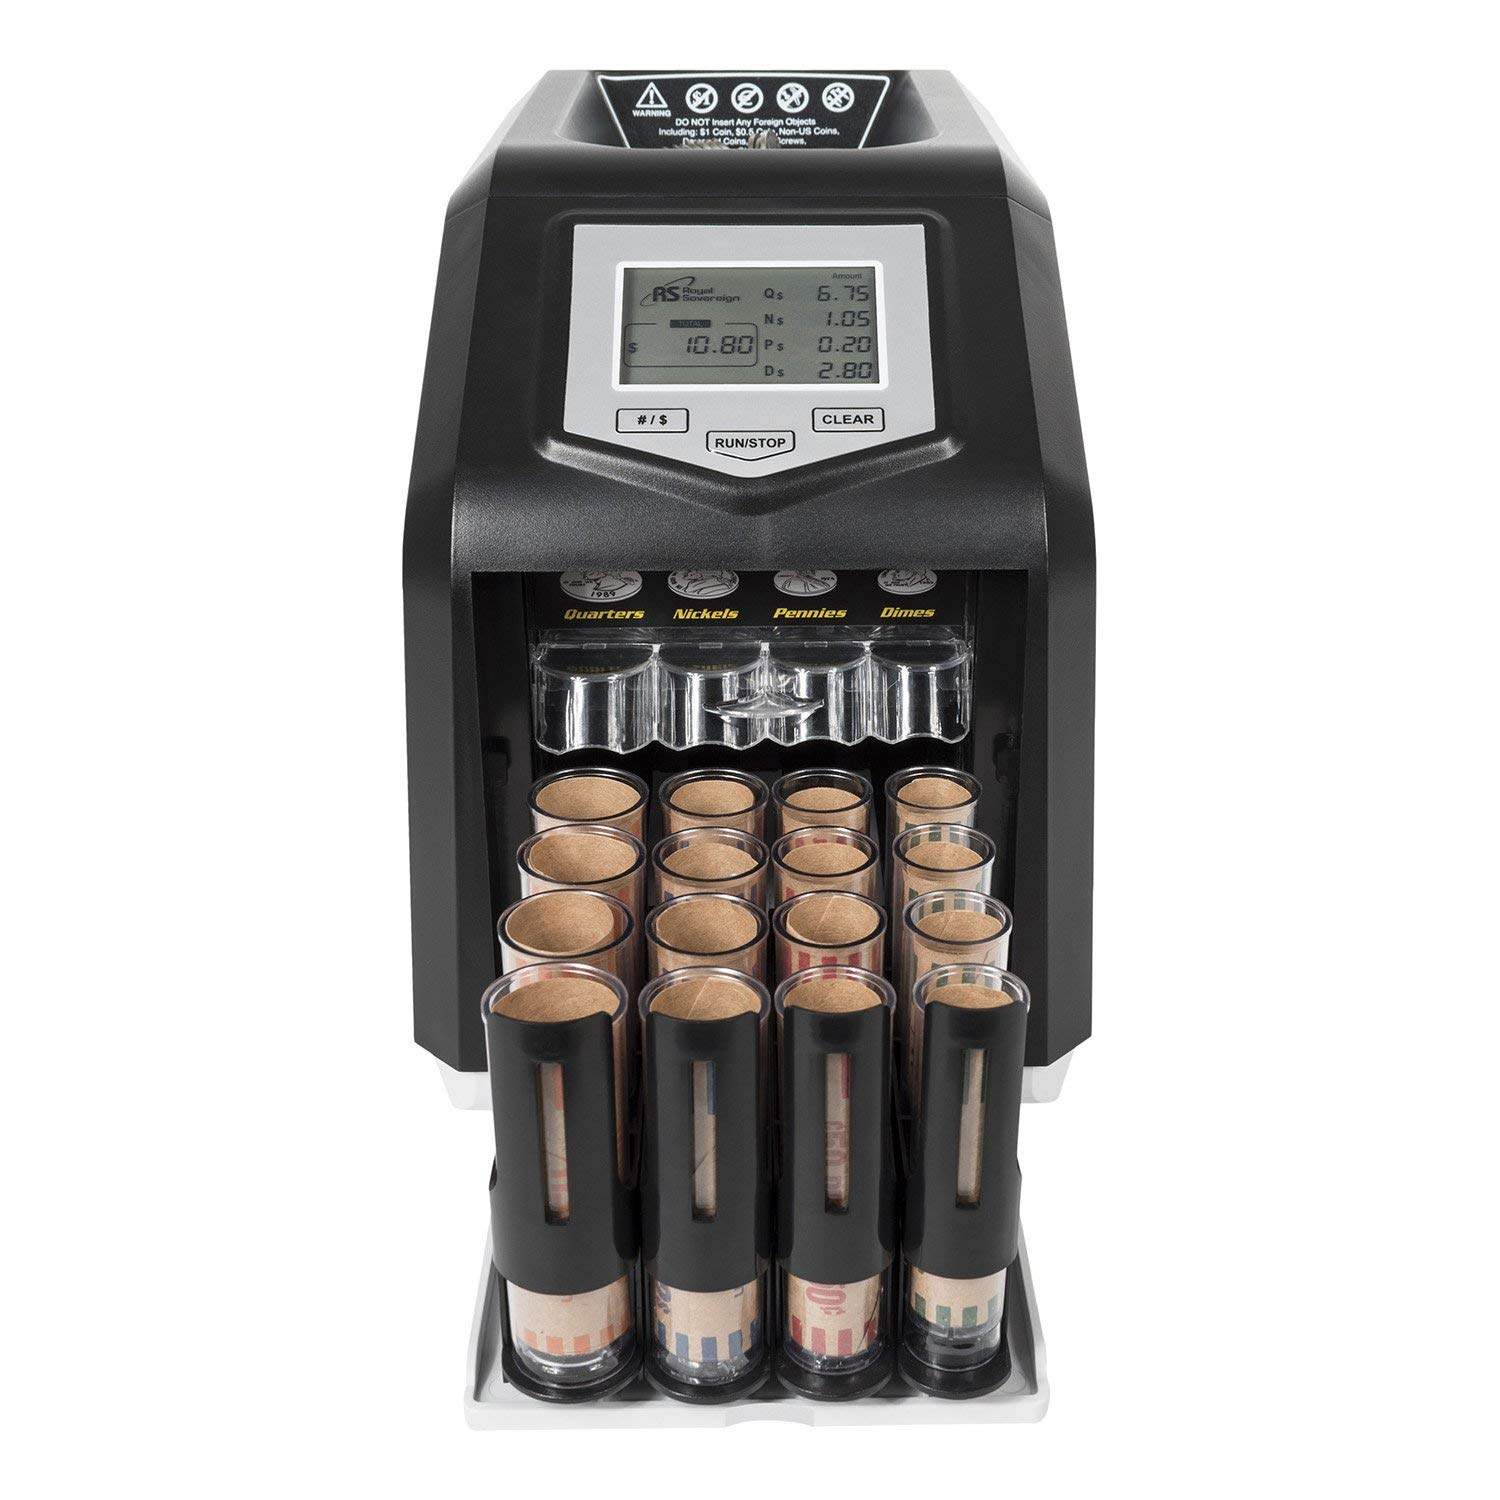 Royal Sovereign Digital 4 Row Electric Coin Sorter, Holds Up To 800 Coins by Royal Sovereign